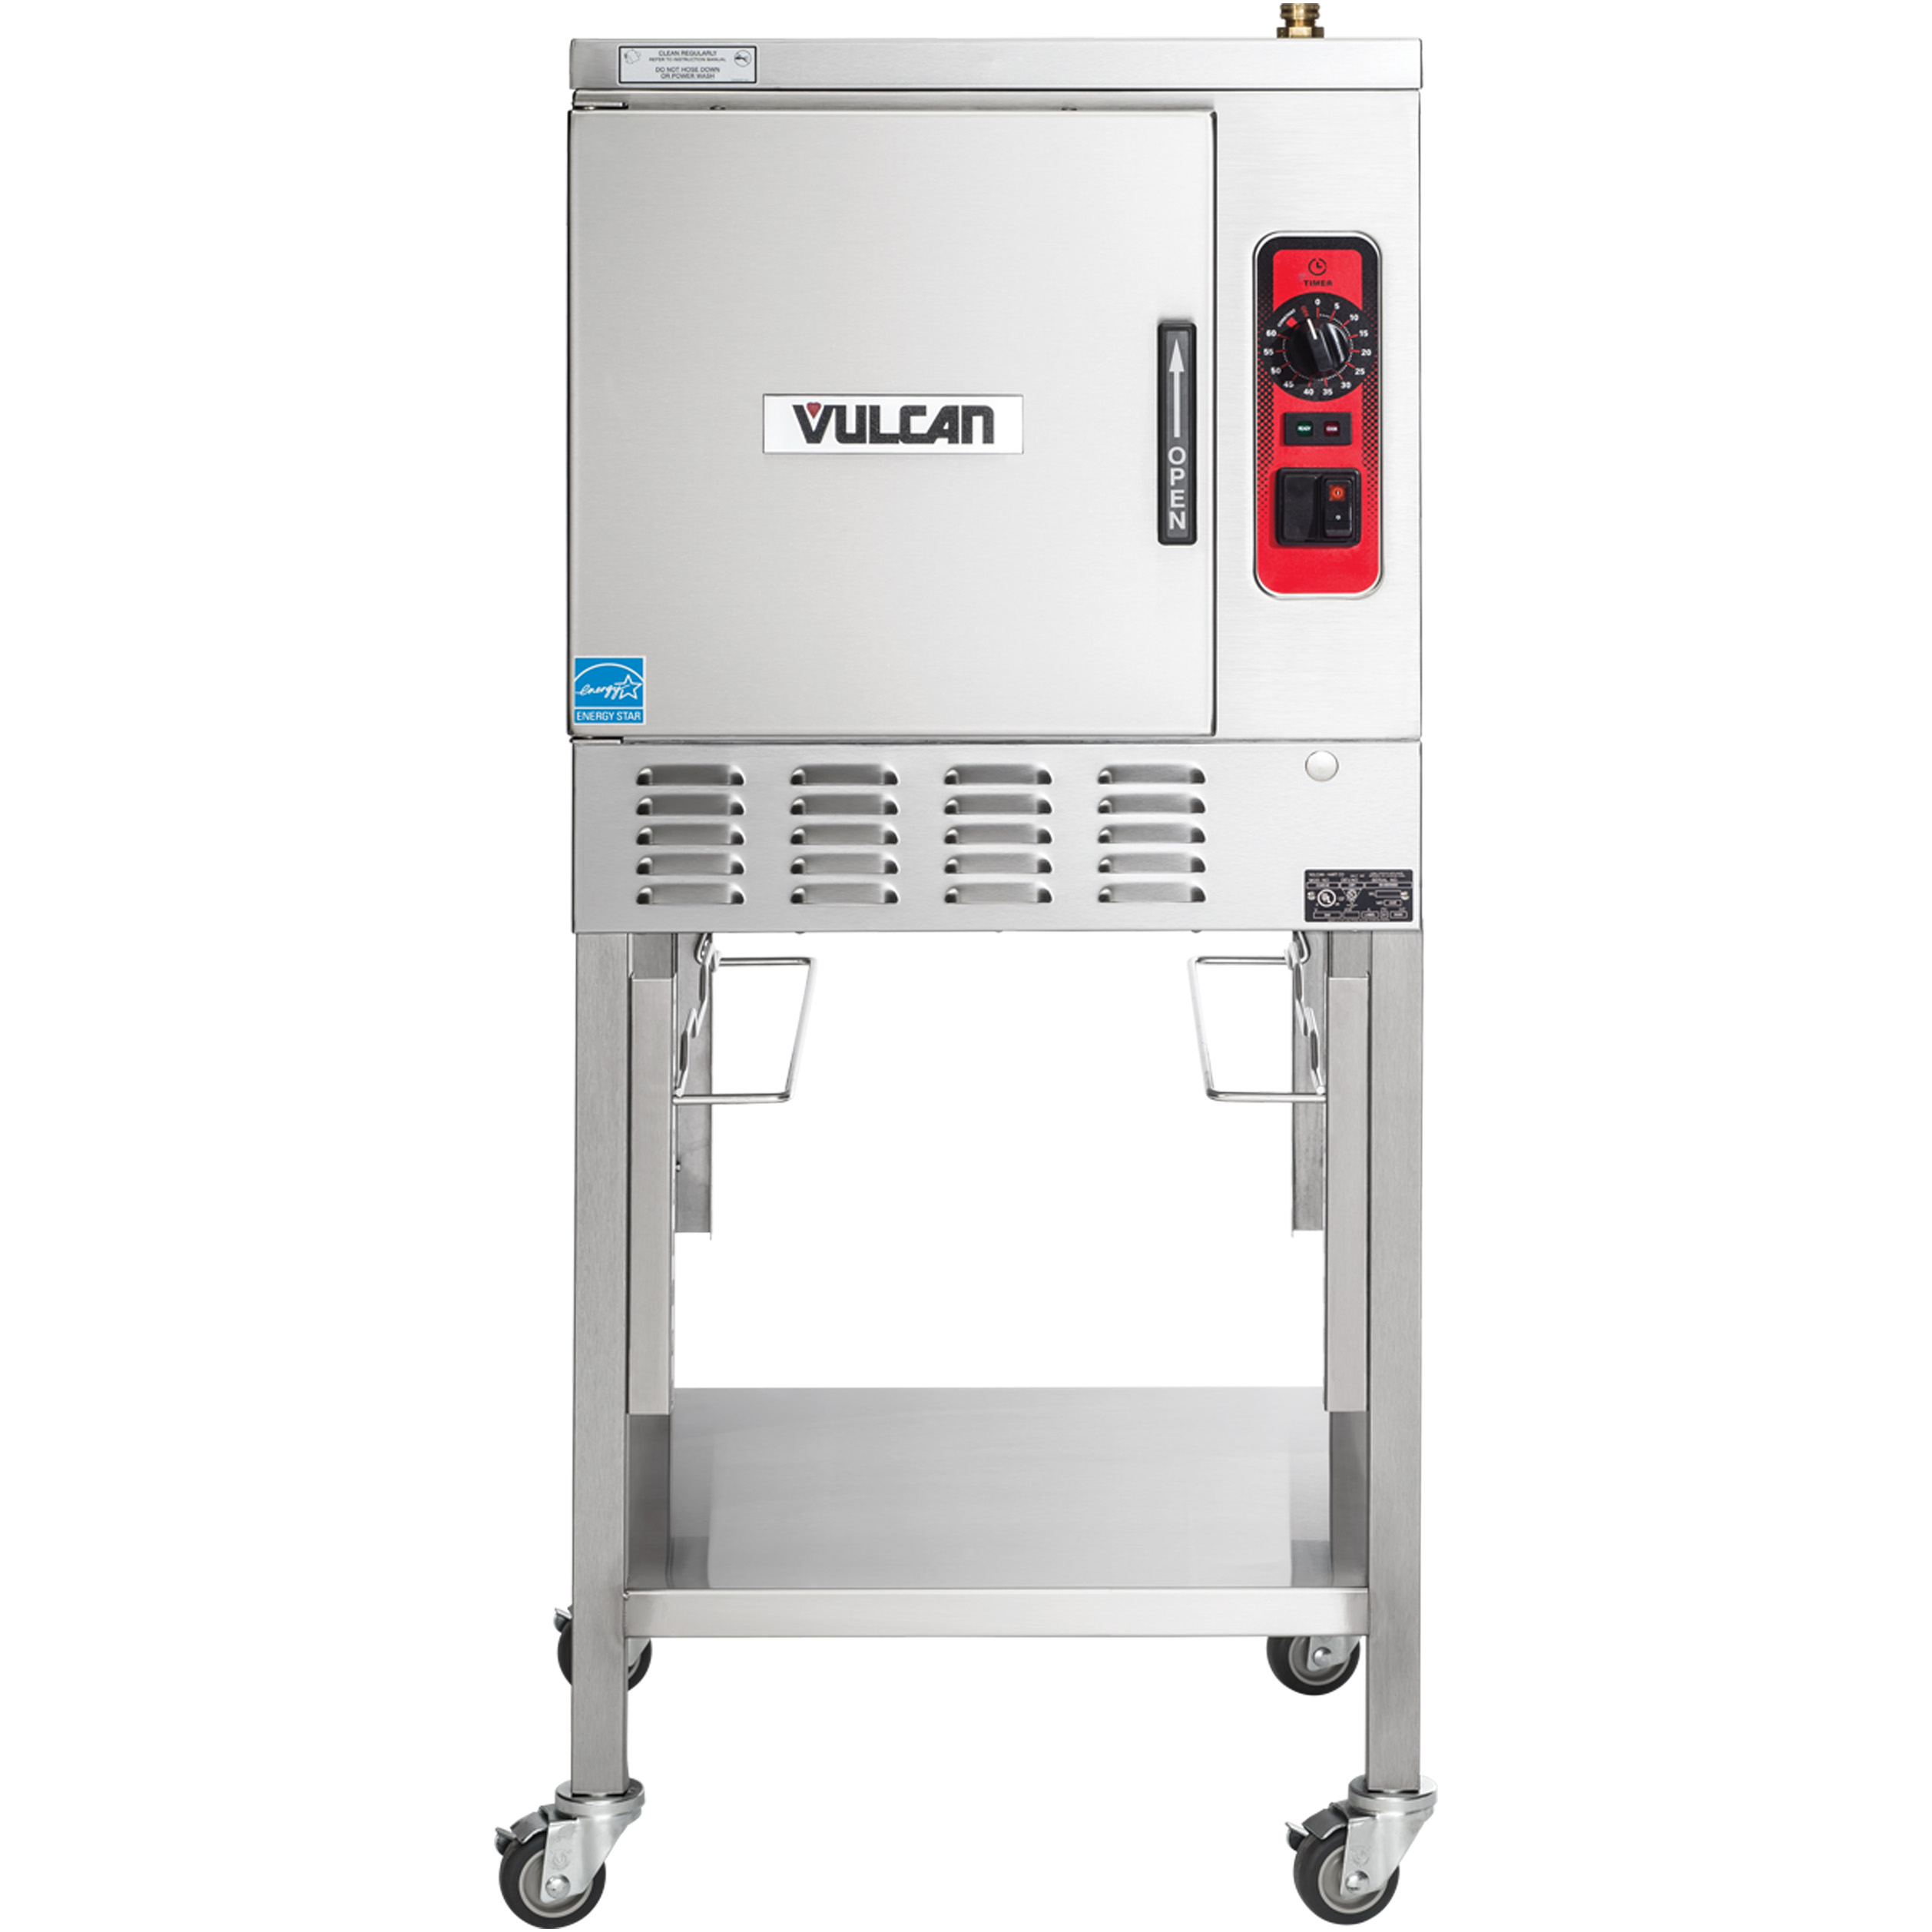 Vulcan C24EA5-LWE steamer, convection, countertop